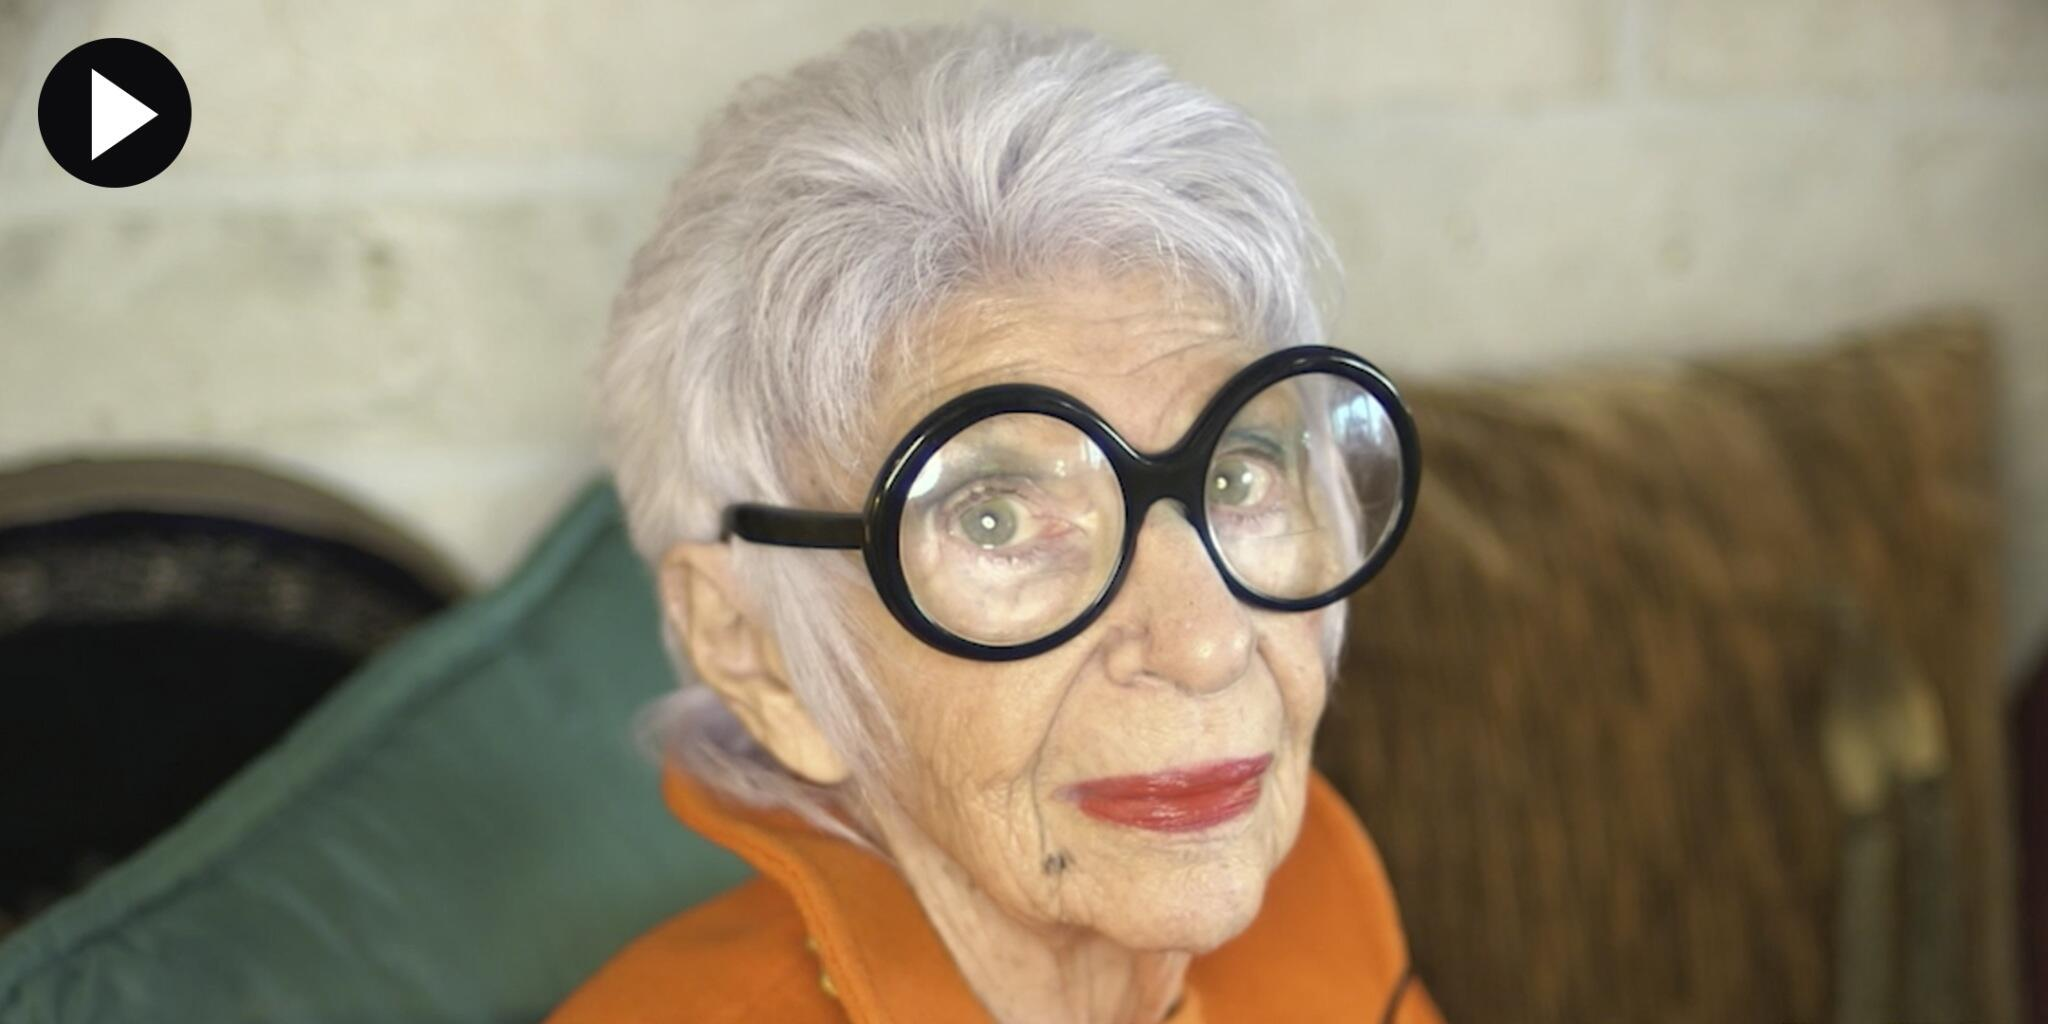 Watch Iris Apfel play dress-up with Matisse: http://t.co/7uDYYU9iFz http://t.co/fqjN6en0xY